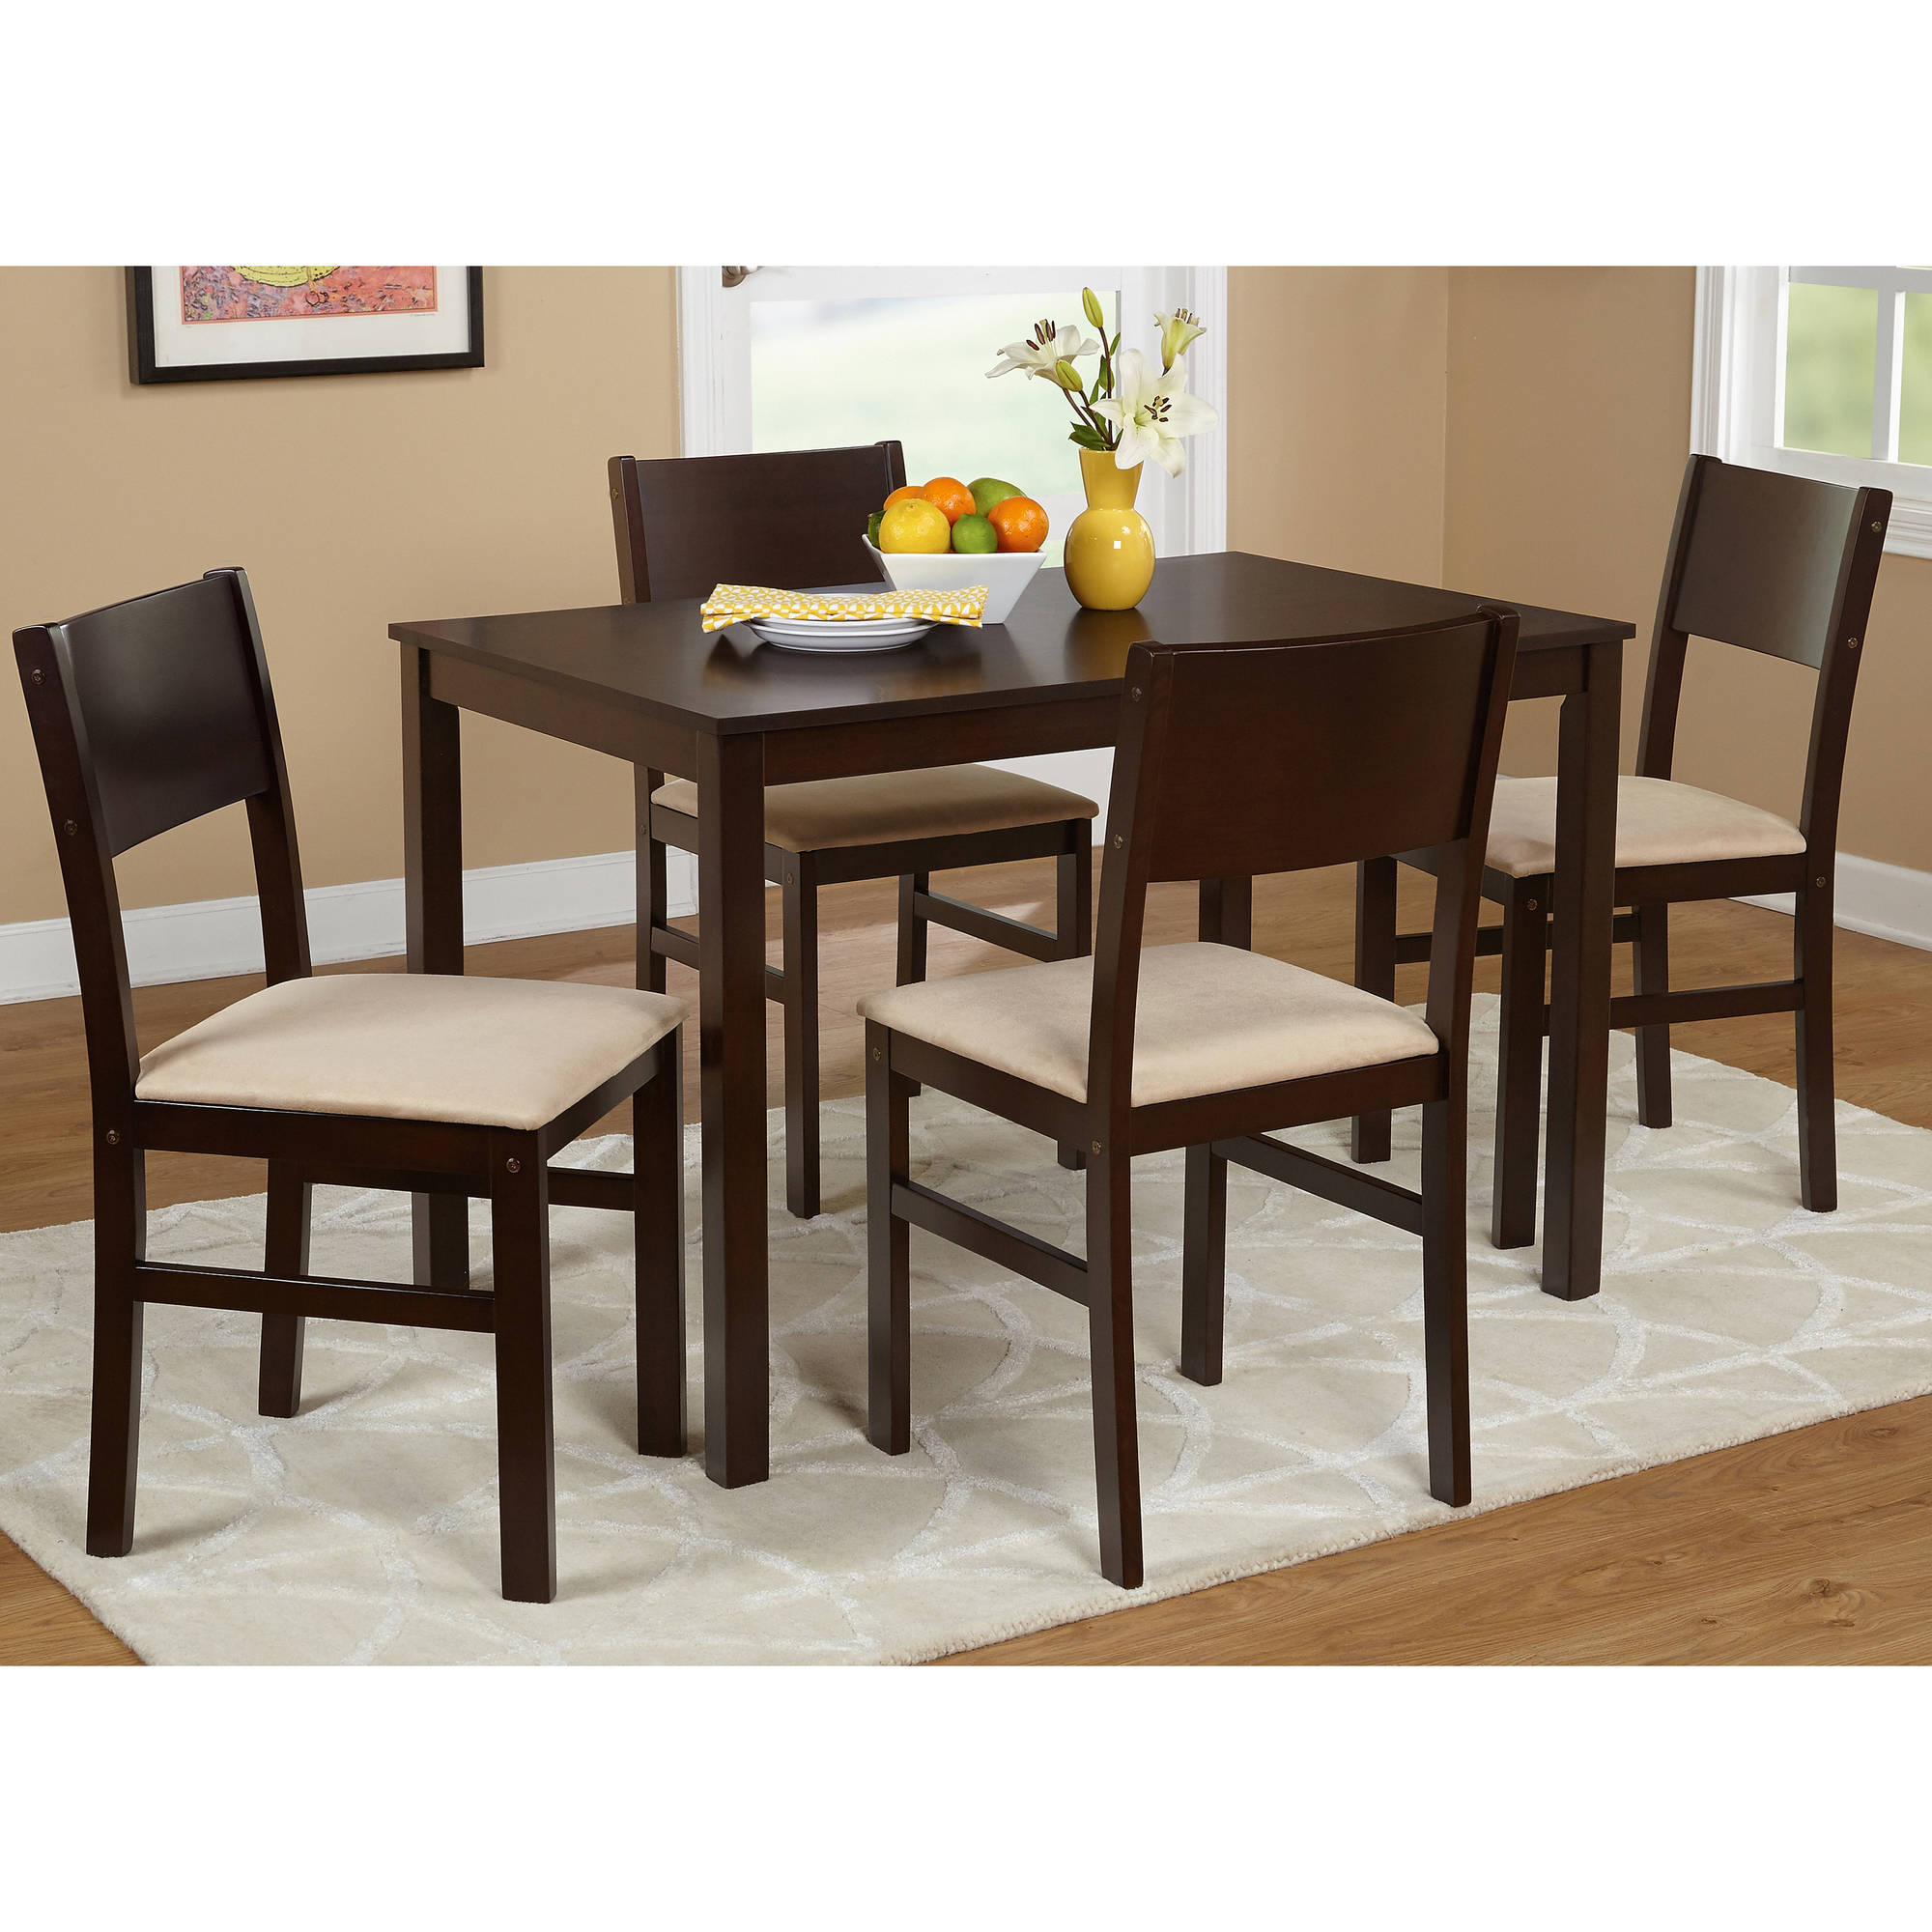 Kitchen Table Sets Under 300 & Dining Room Sets Under 300 Kitchen For Fashionable Winsted 4 Piece Counter Height Dining Sets (View 13 of 20)